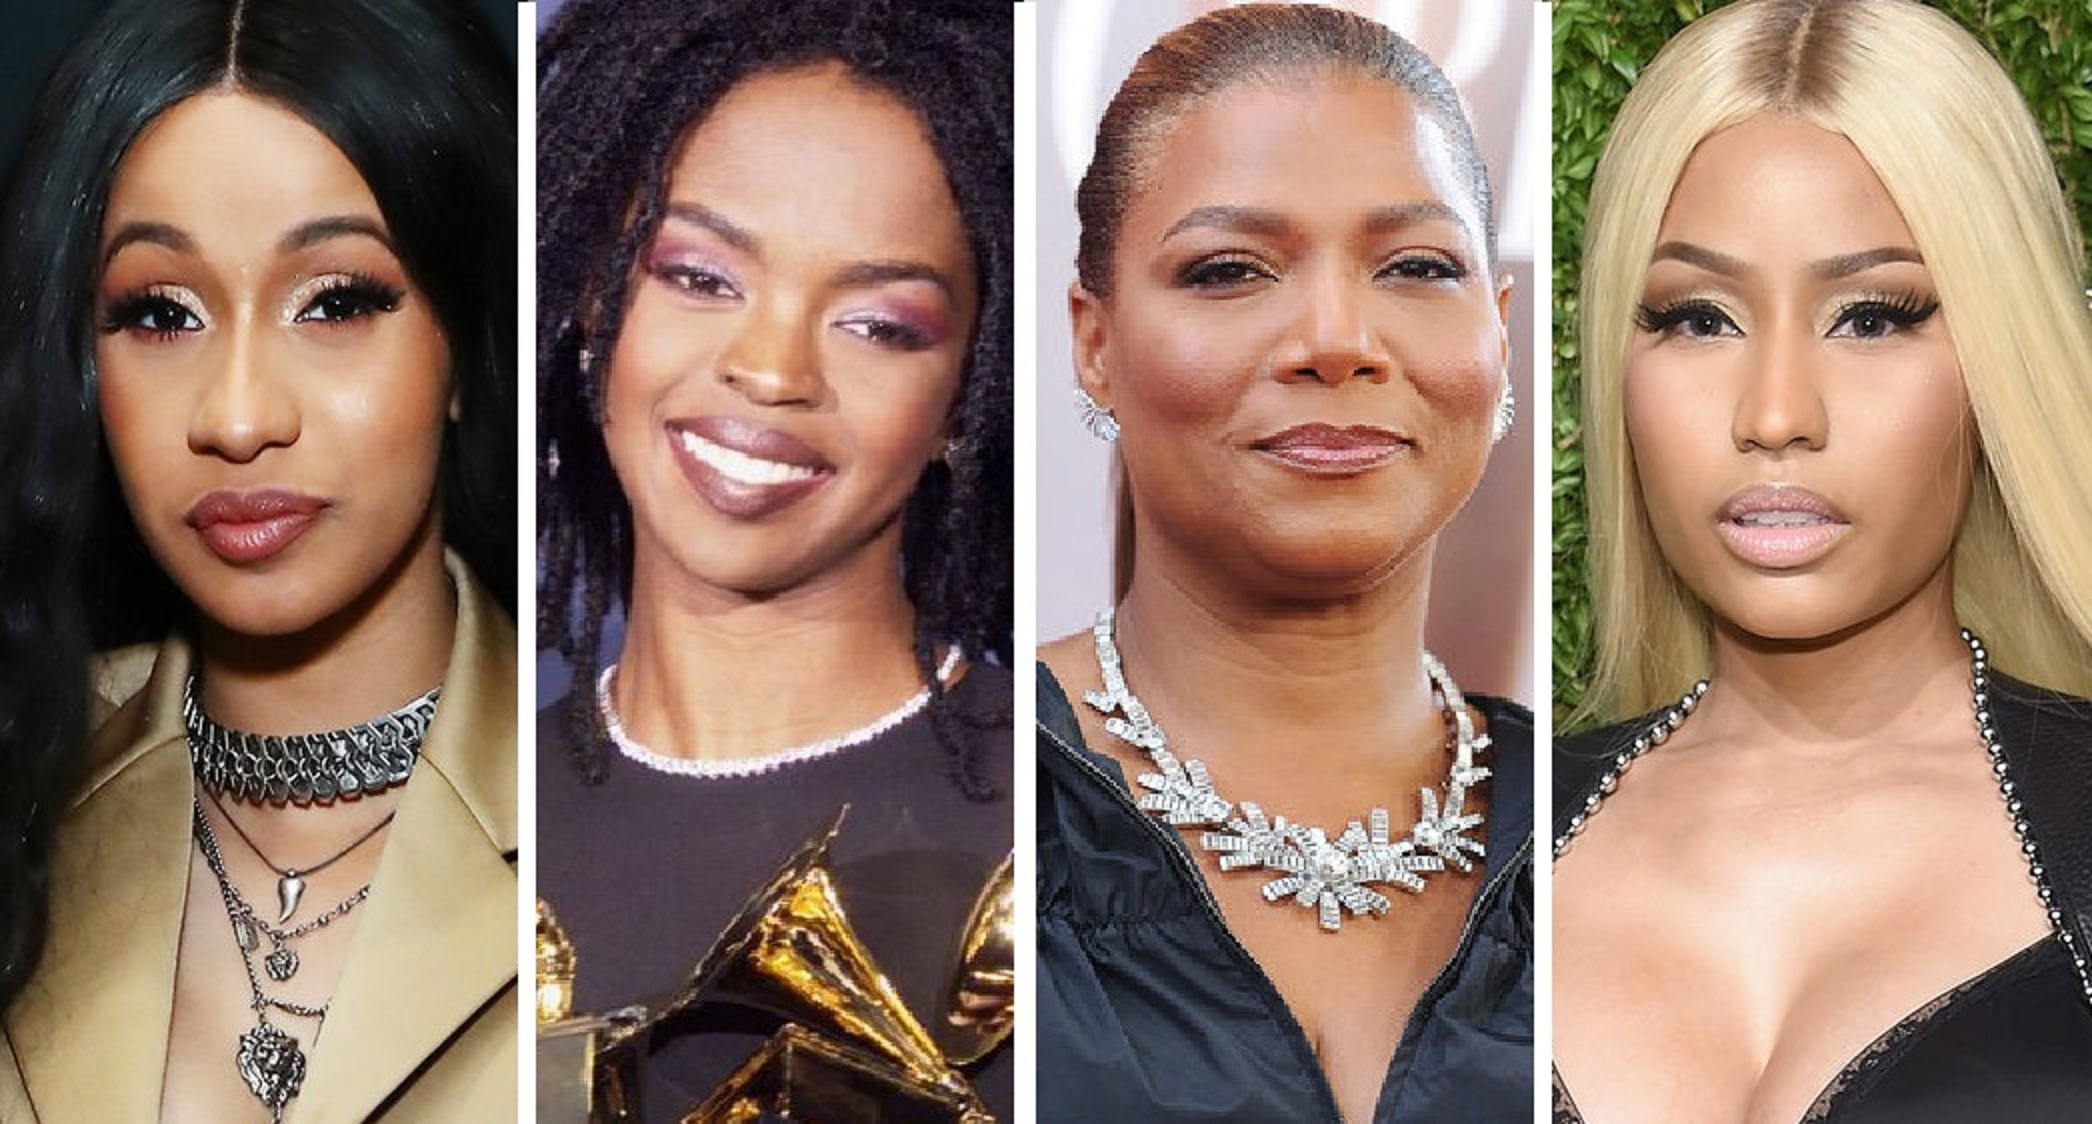 Poll: Vote For the Best Female Rapper Of All Time